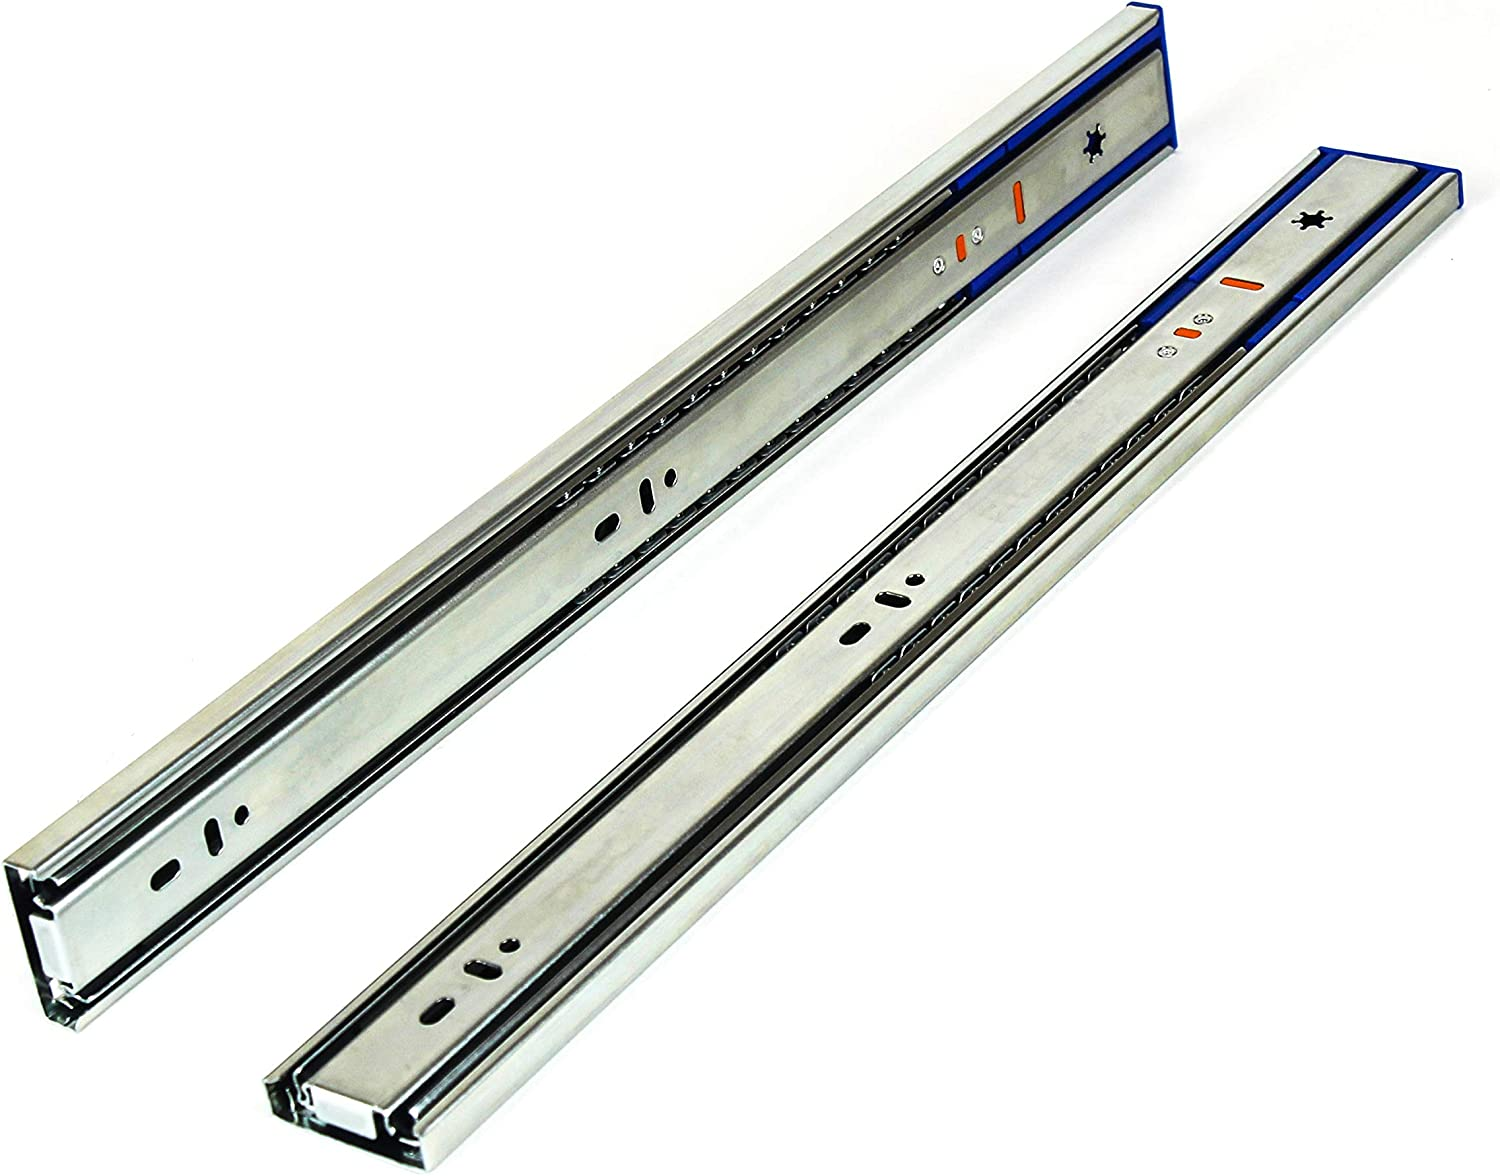 10 Pack Berta Full Extension Push to Open Ball Bearing Side Mount Drawer Slides 20-Inch 100Lb Load Rating 10 Pairs